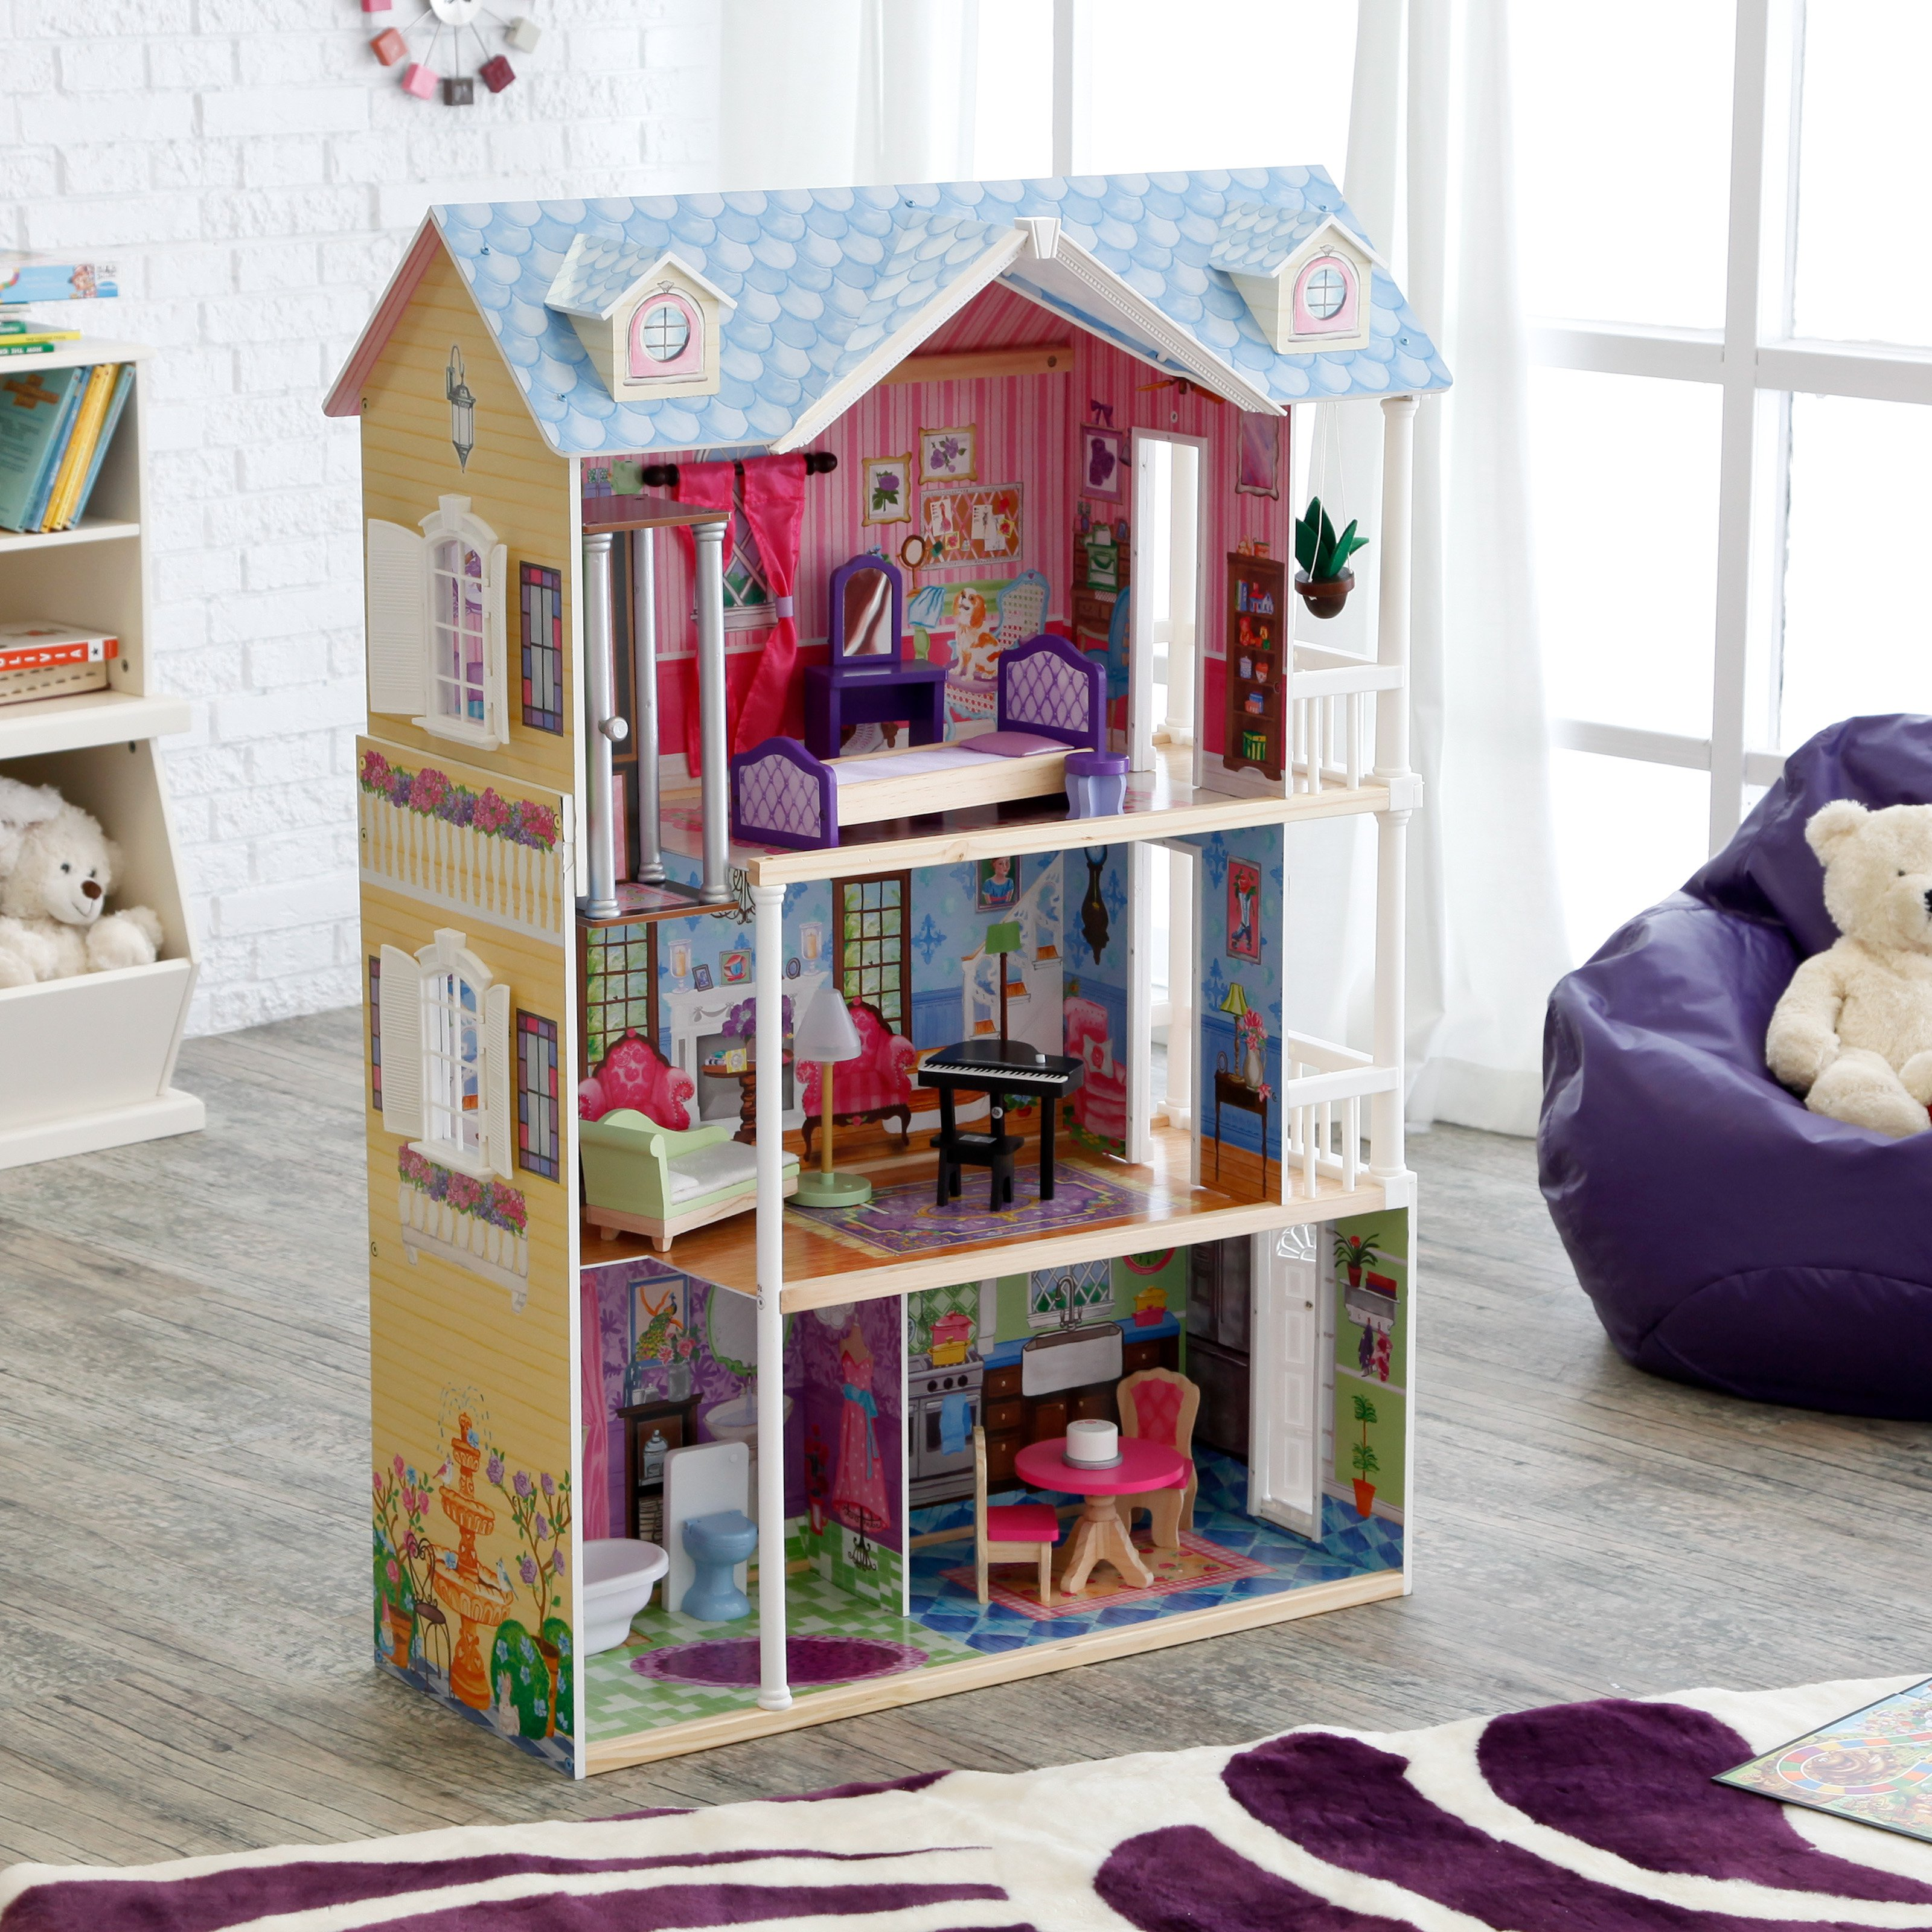 wonderful kidkraft dollhouse made of wood in triple tier design with blue roof on wooden floor which matched with white wall for nursery decor ideas